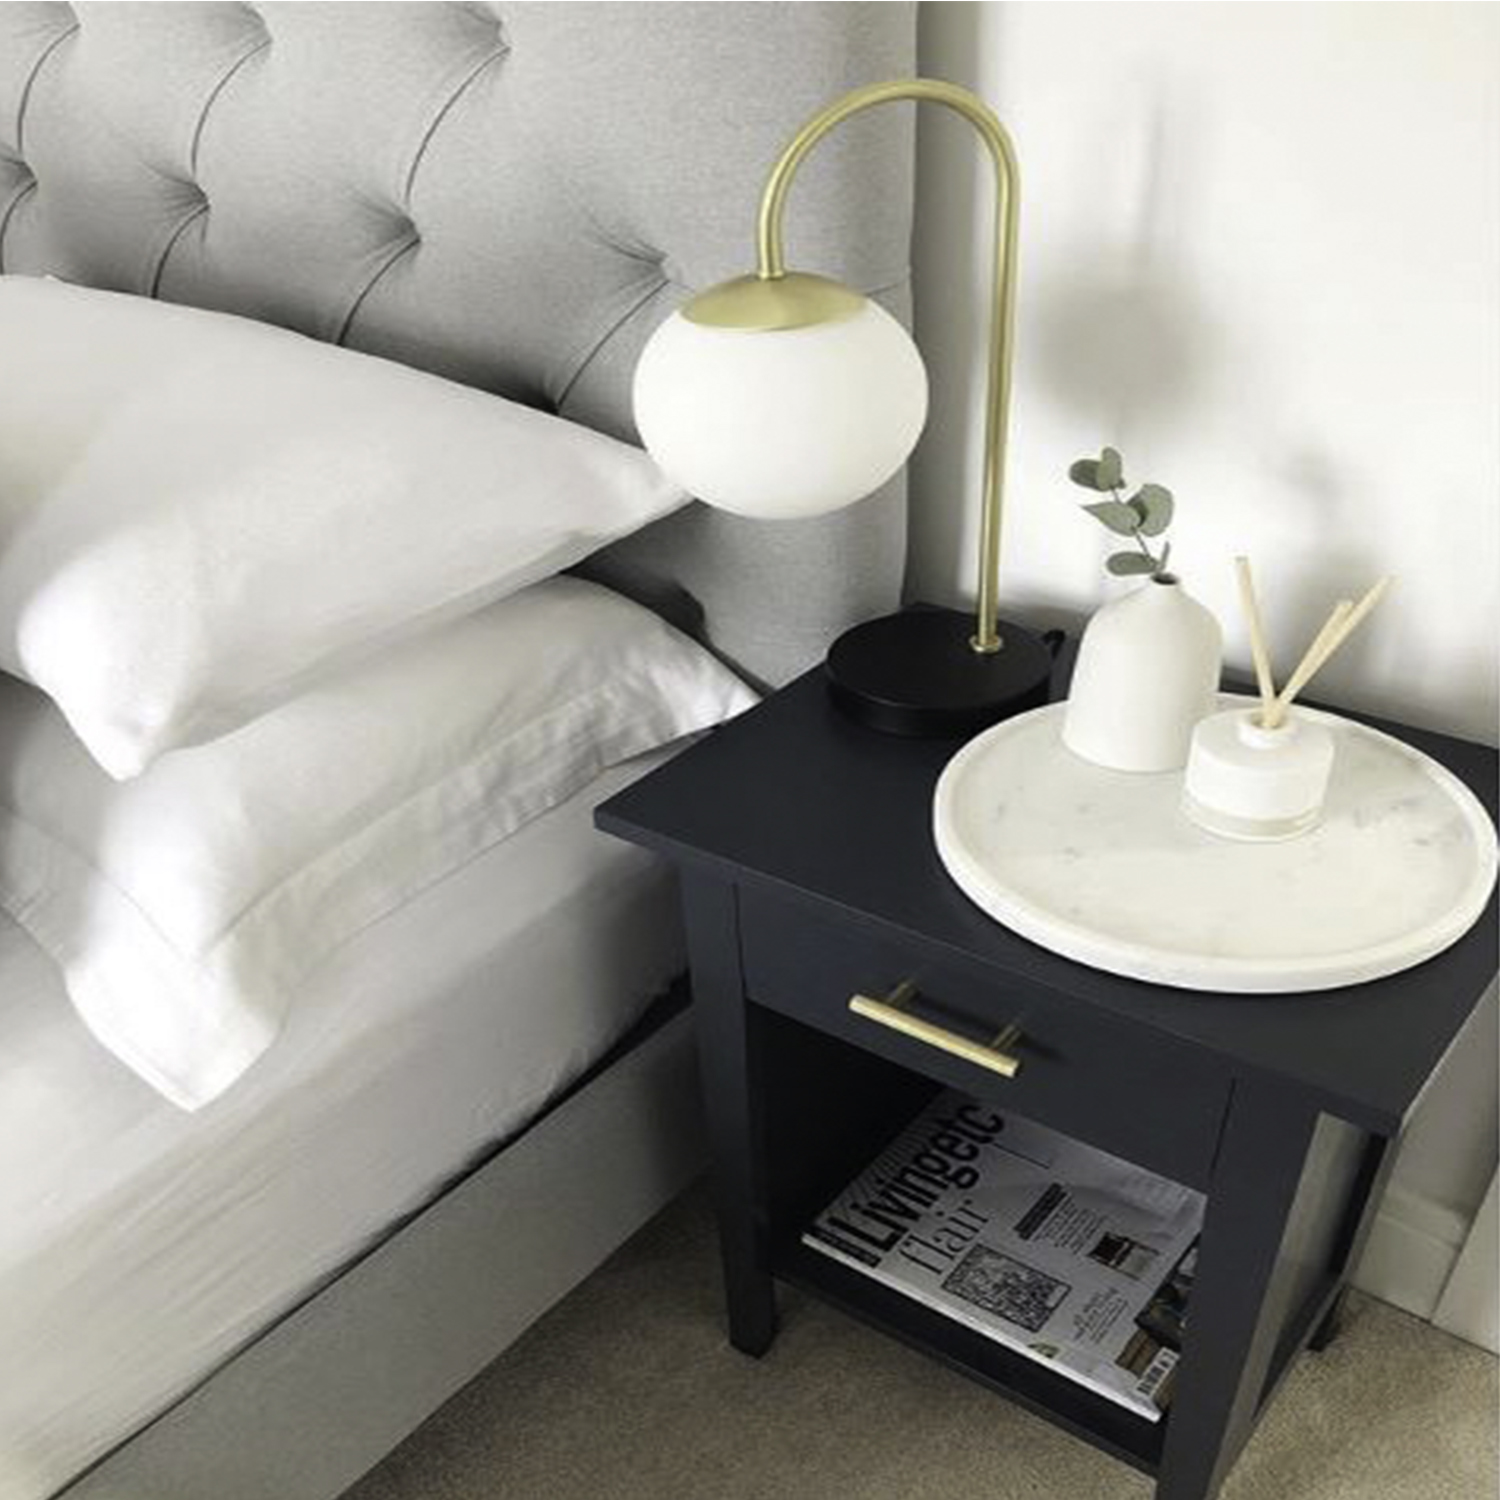 brass skyscraper handle on dark grey bedside table in a white and grey bedroom